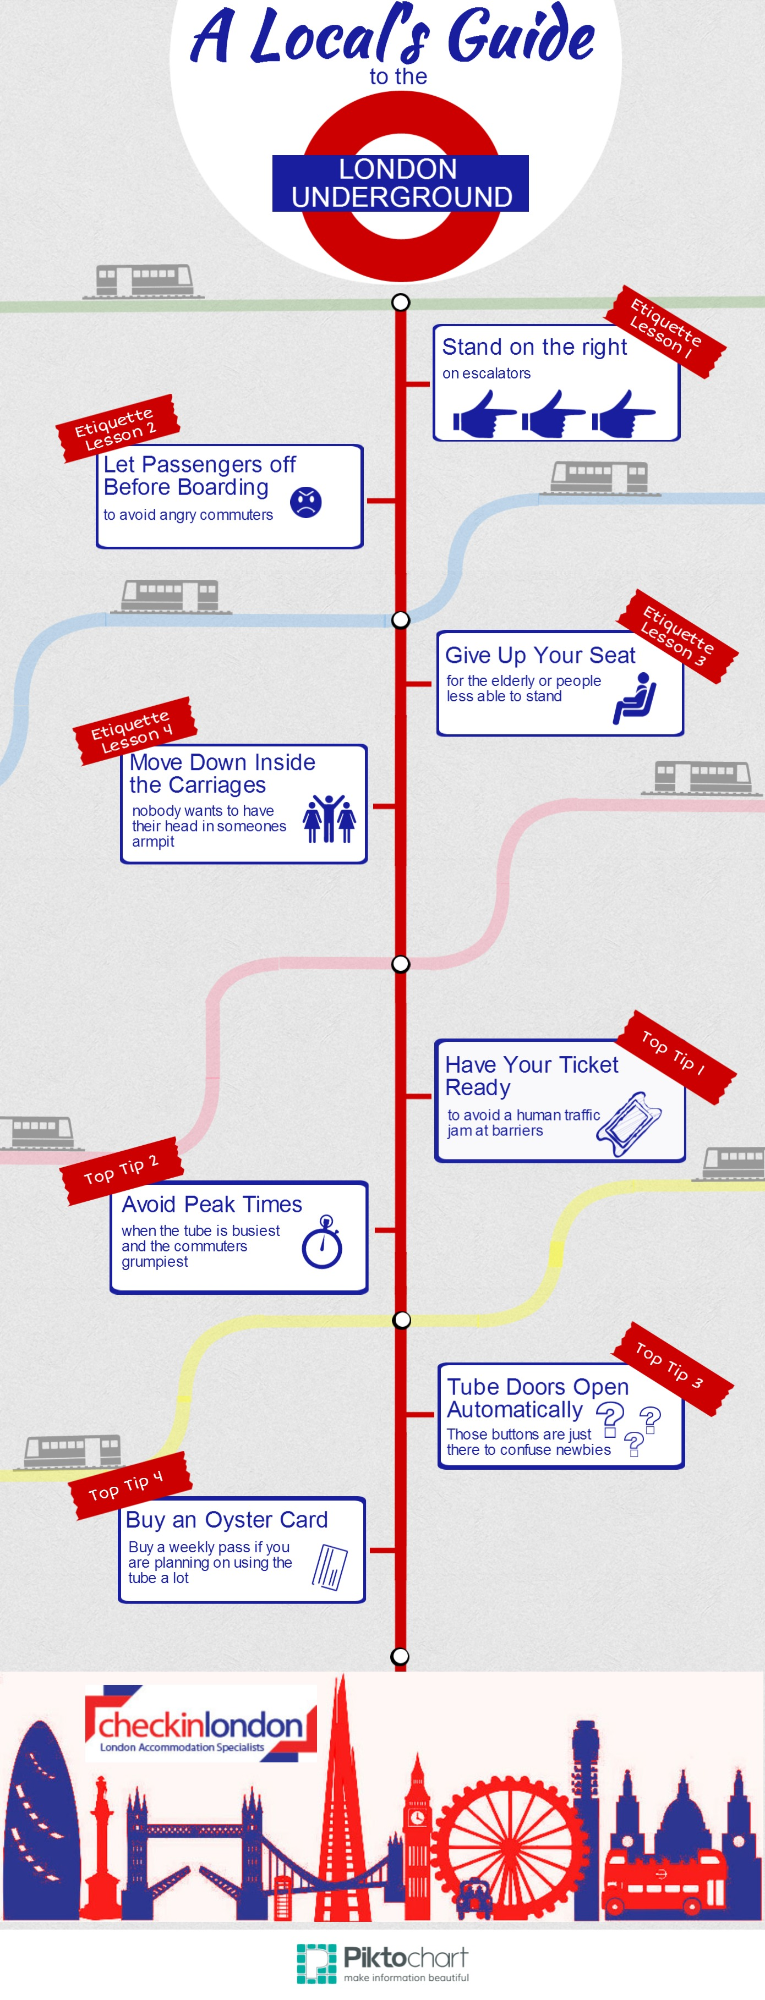 A Local's Guide to the London Underground